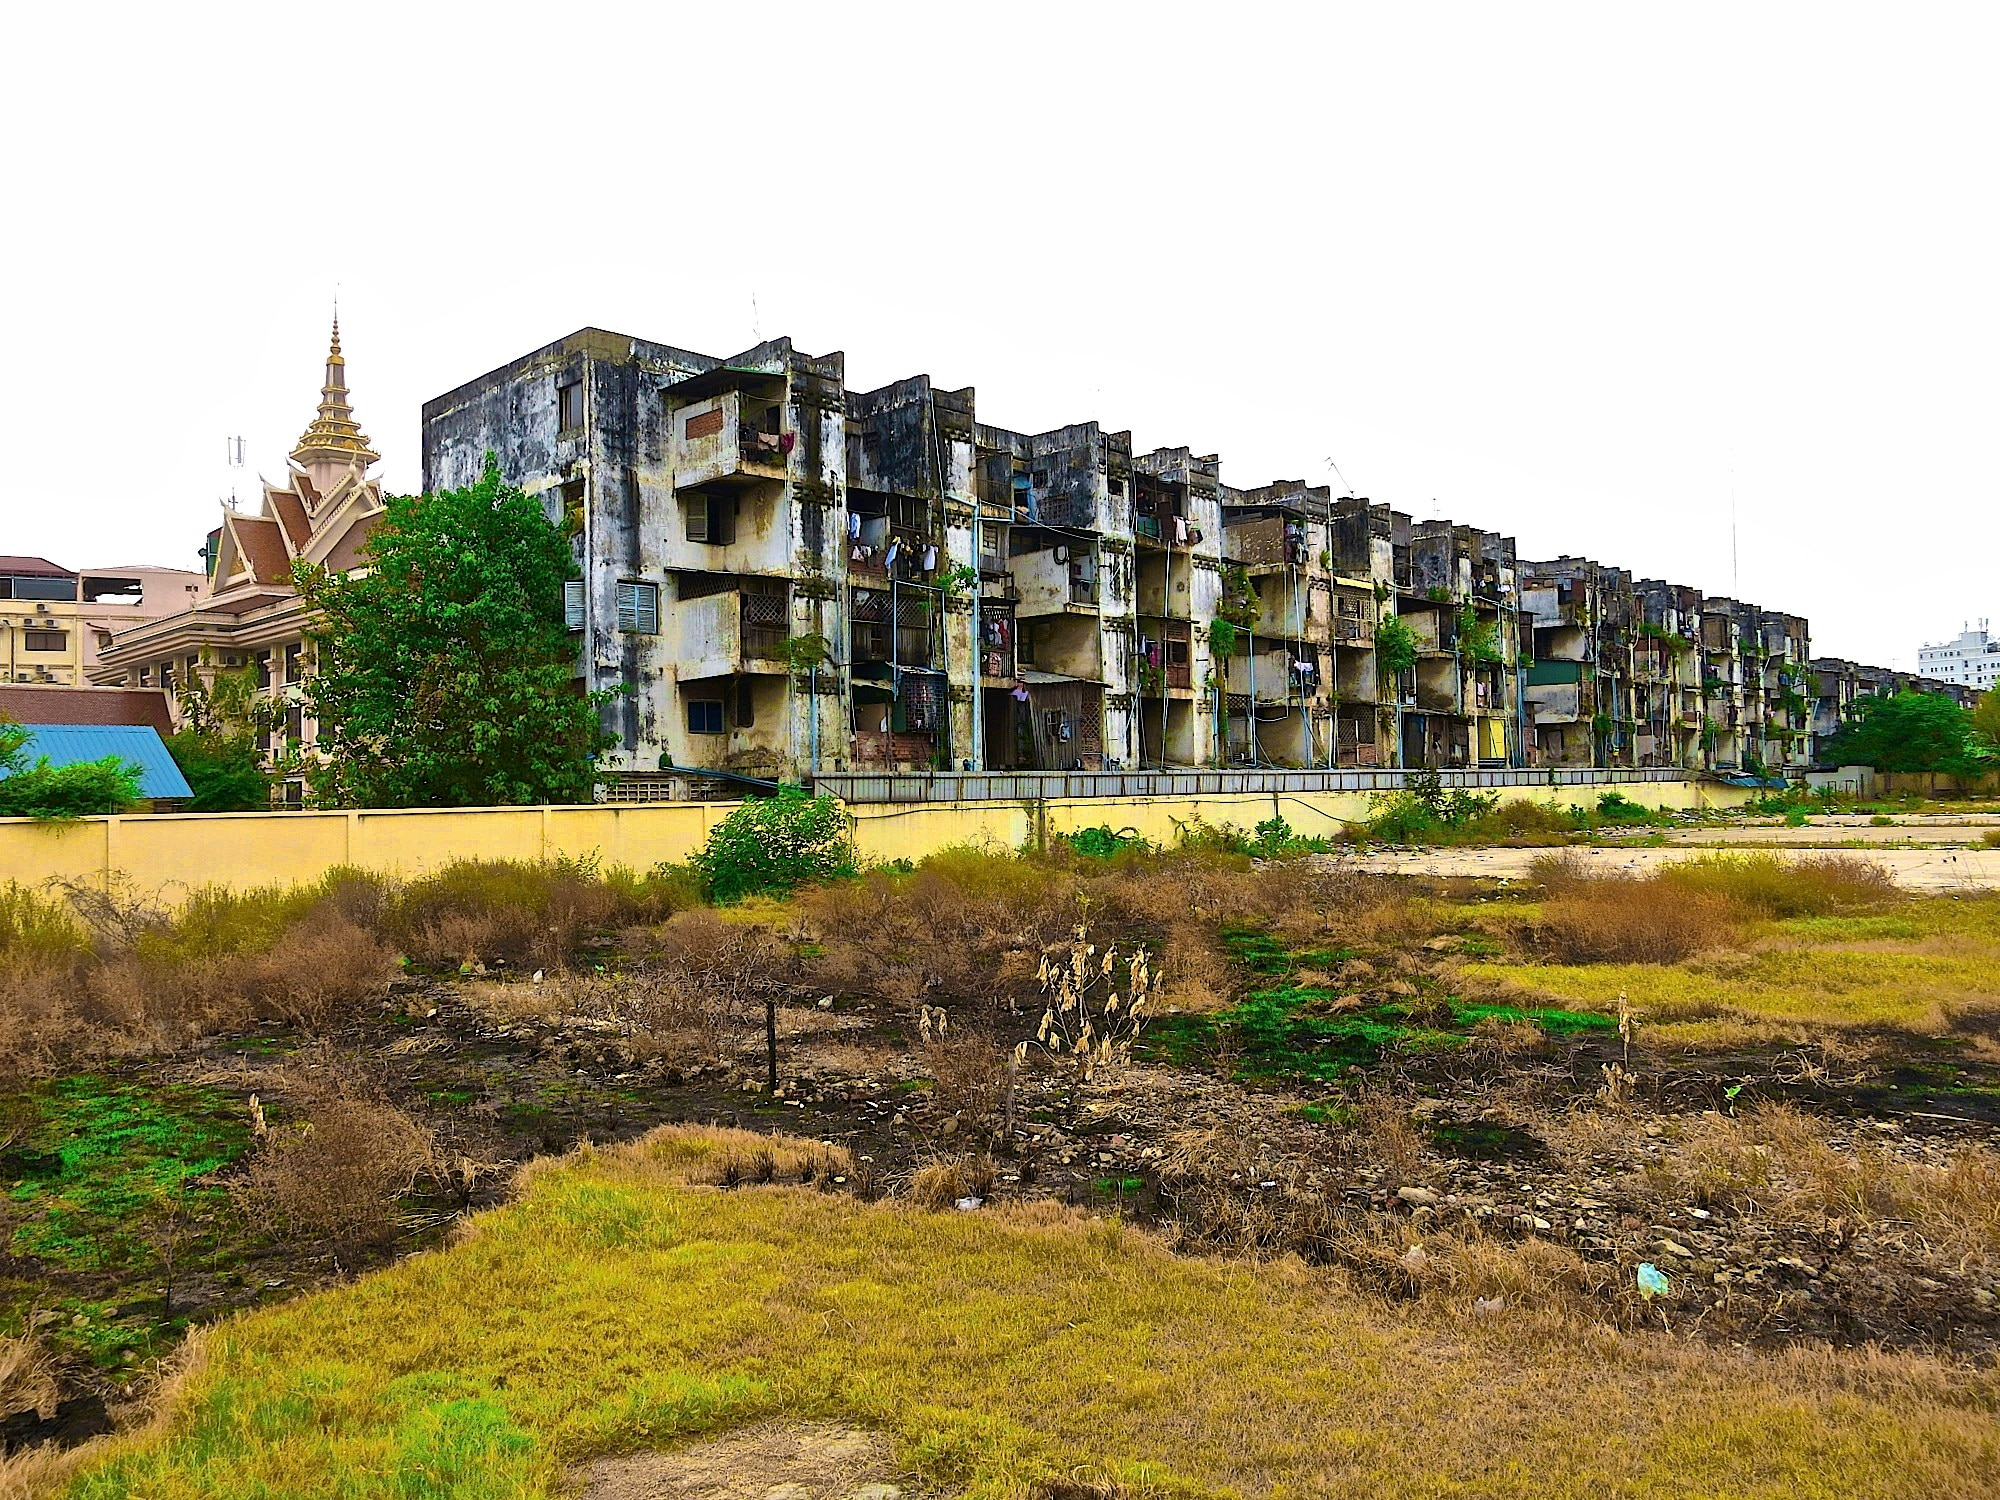 "Known today as the ""white building"", this apartment complex was part of an Olympic village project and later served as housing for teachers and government officials. The Khmer Rouge drove the inhabitants from their homes during their rise to power in the 1970s."